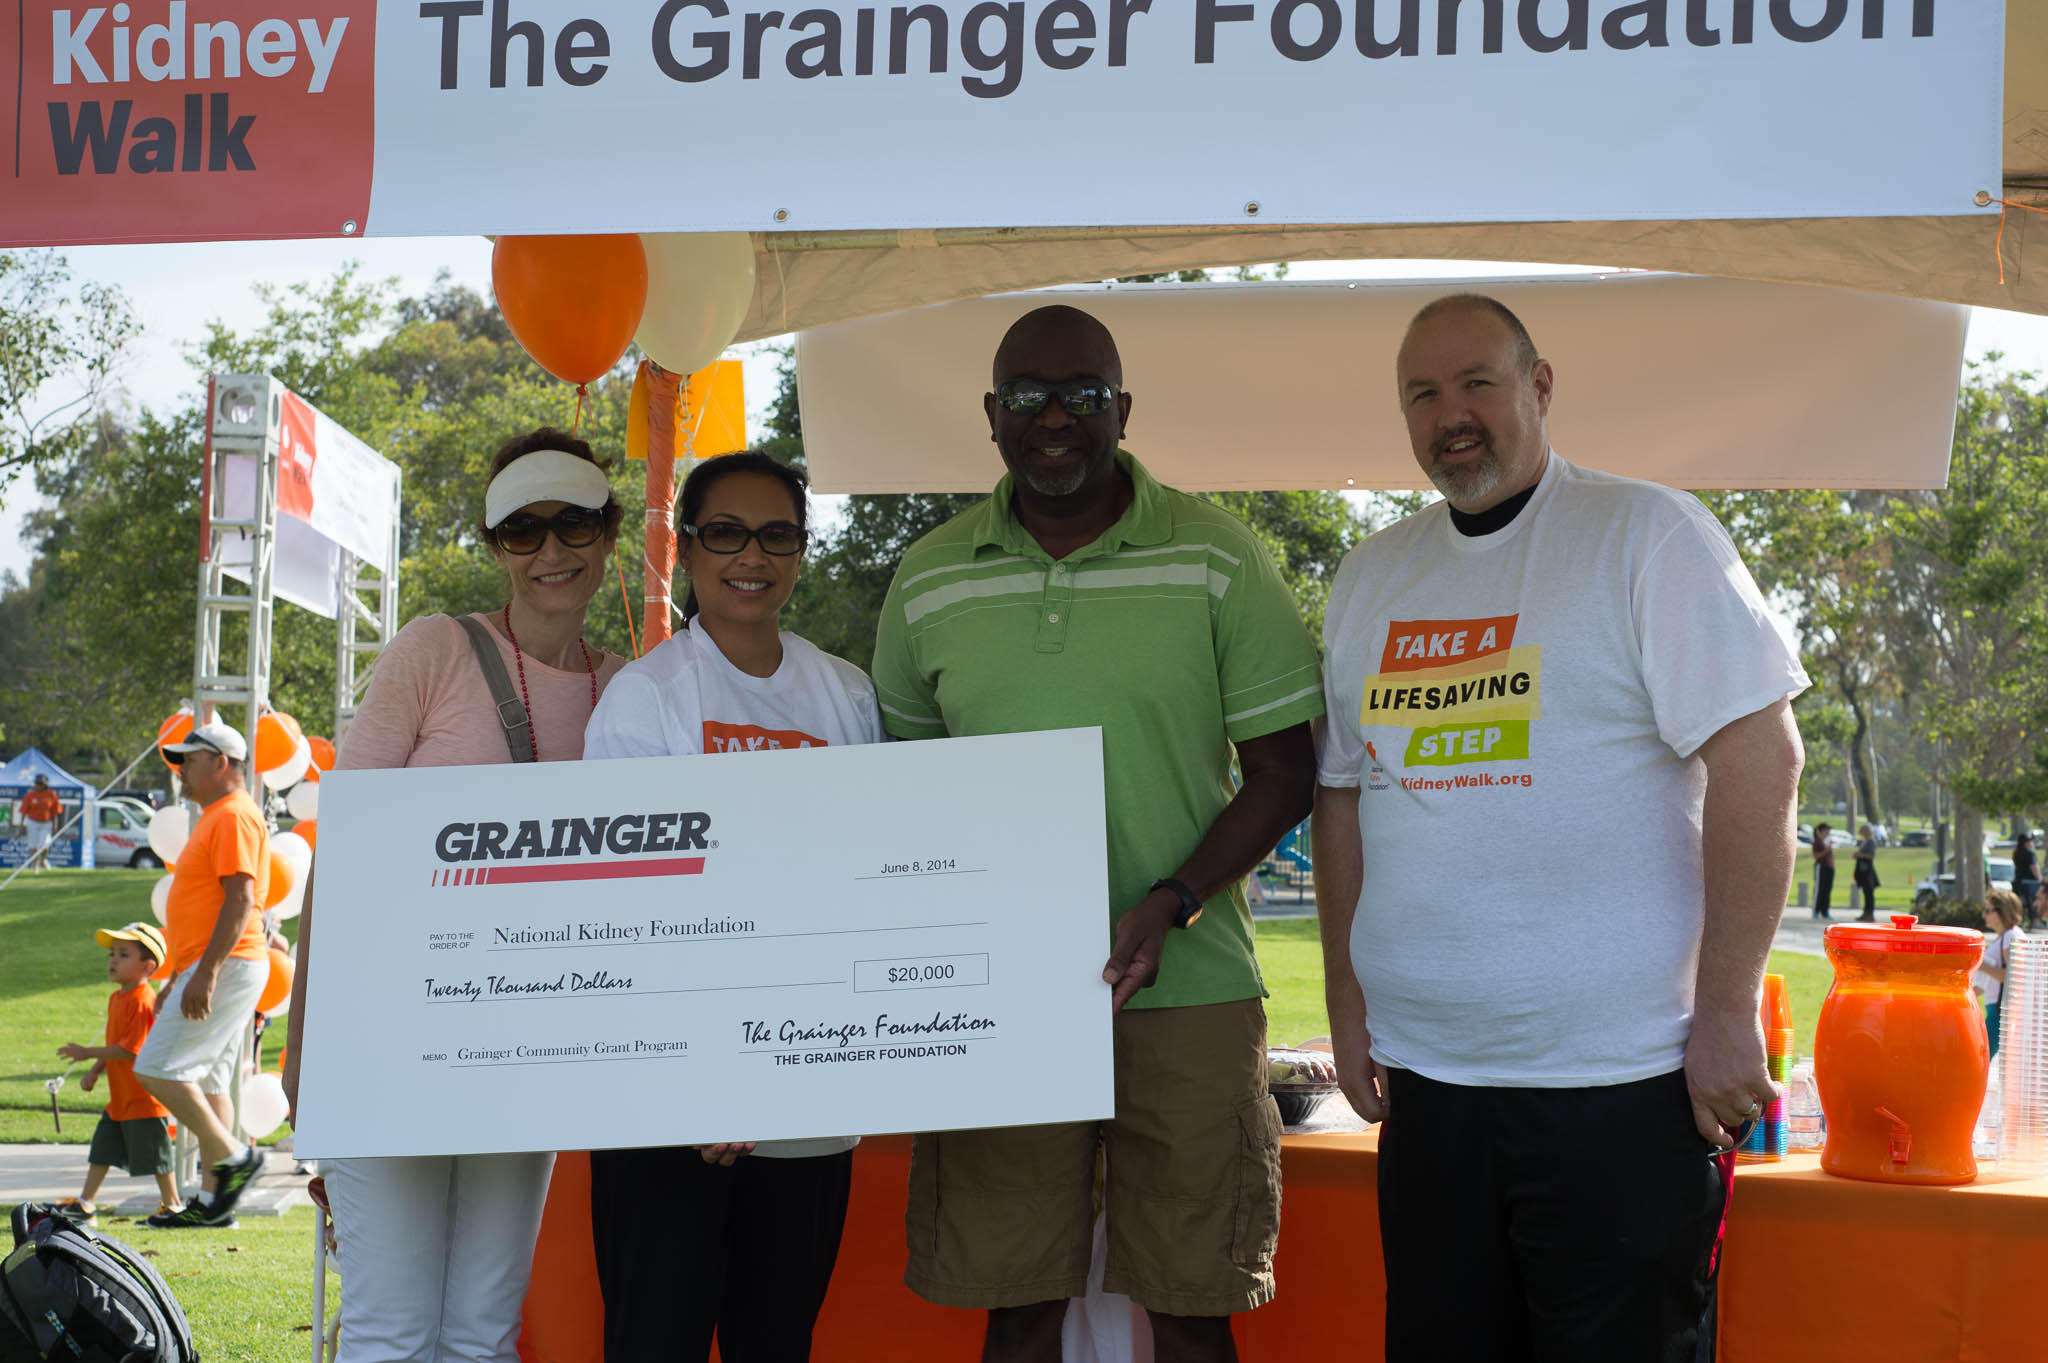 Corporate Sponsors The Grainger Foundation Presenting a Donation to the NKF